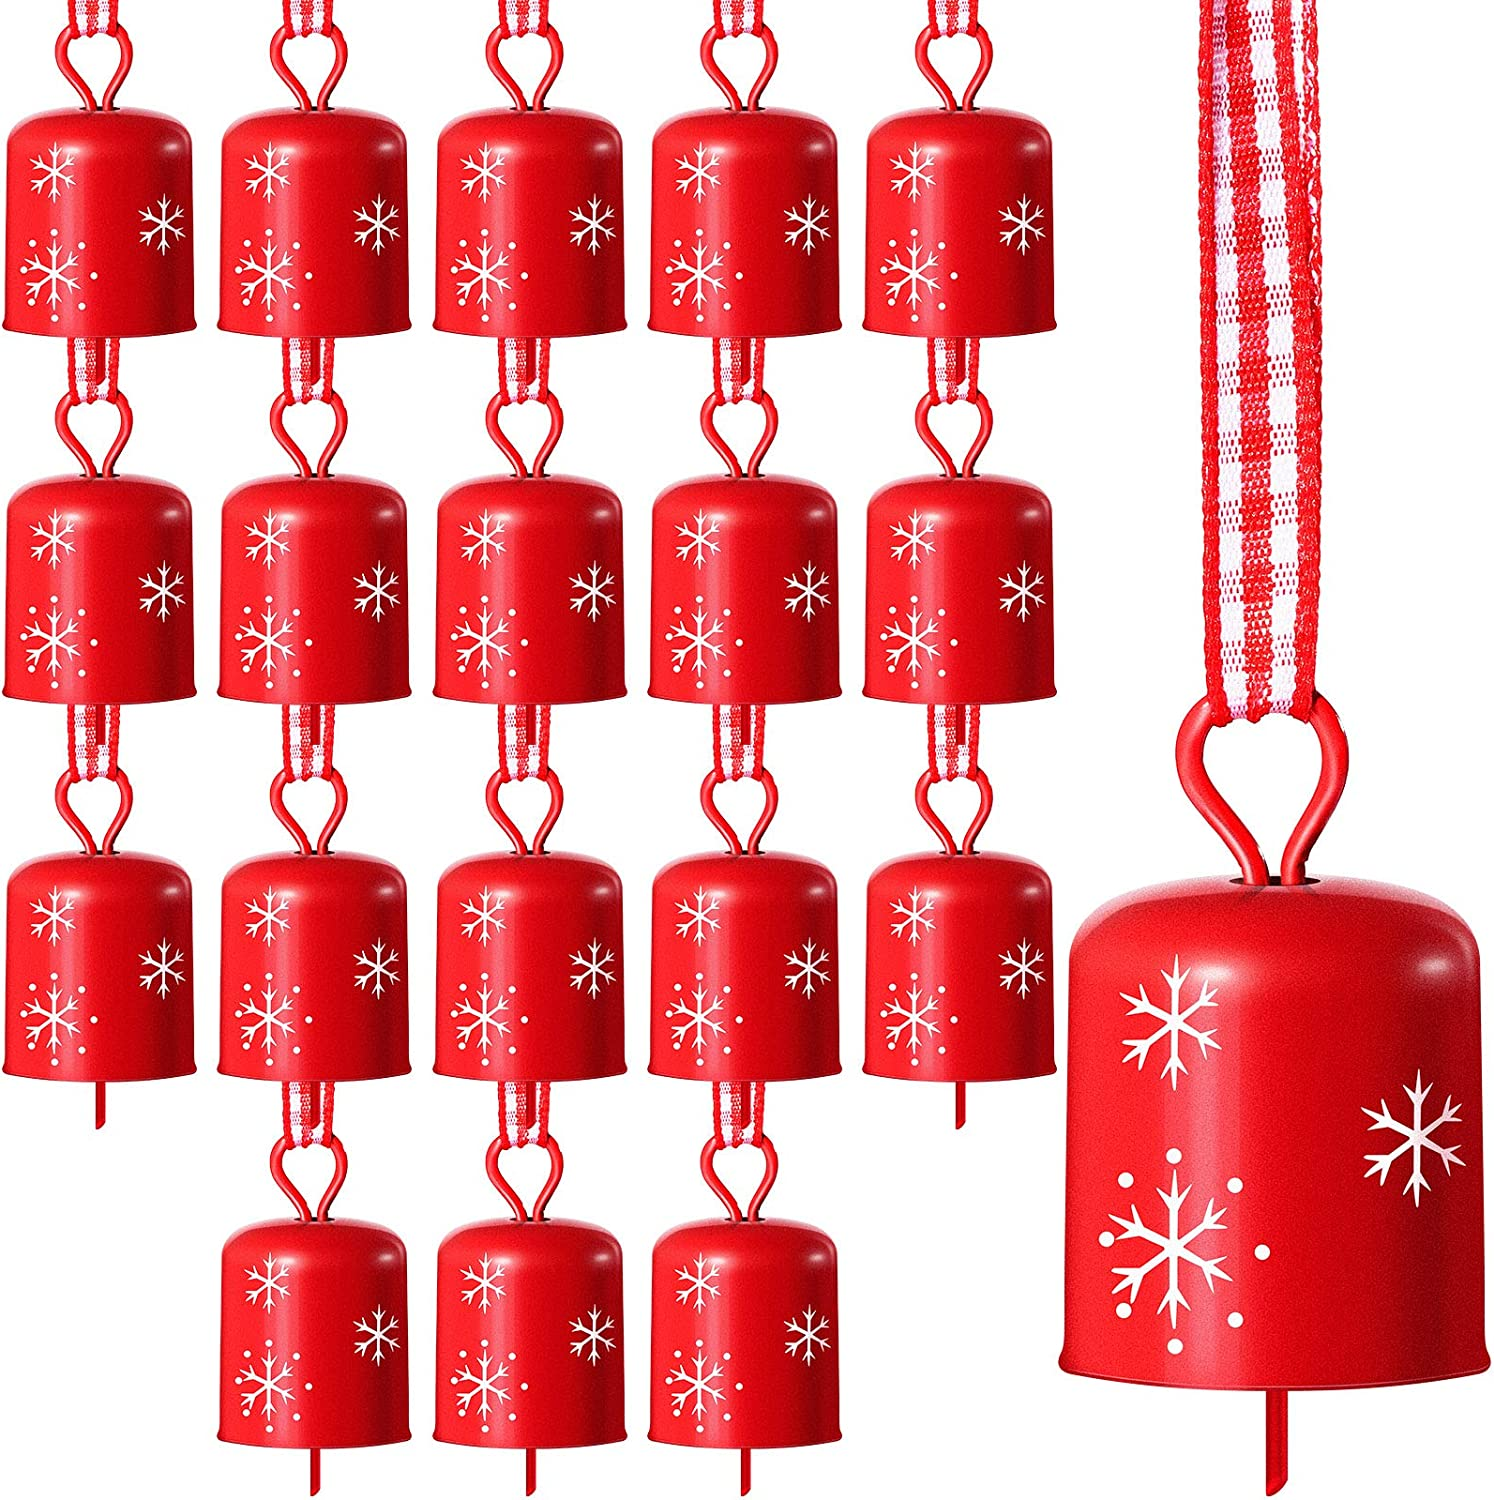 18 Pieces Now on sale Christmas Complete Free Shipping Bells Tree Sno Ornament with